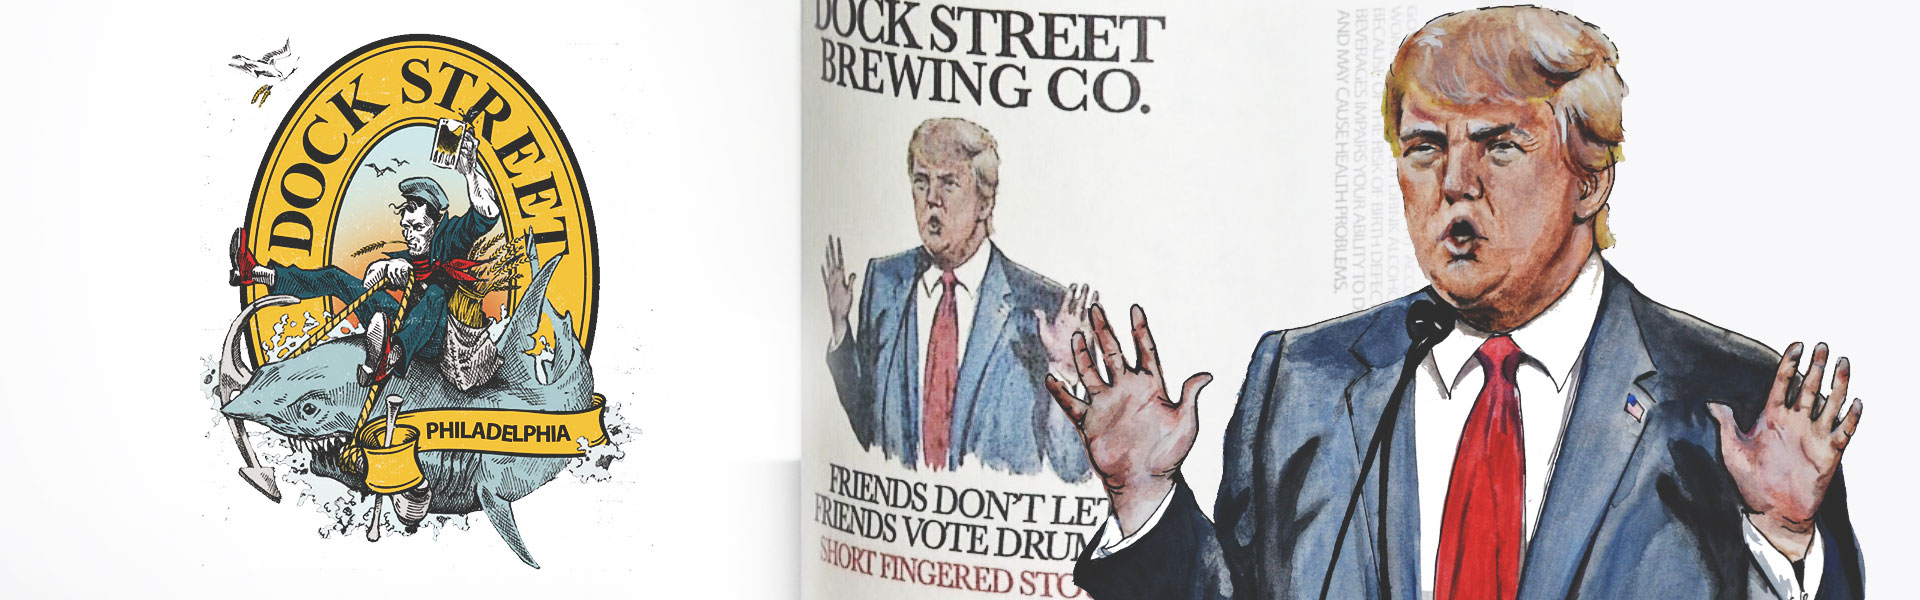 trump-beer-friends-let-vote-drumpf-dock-street-brewing